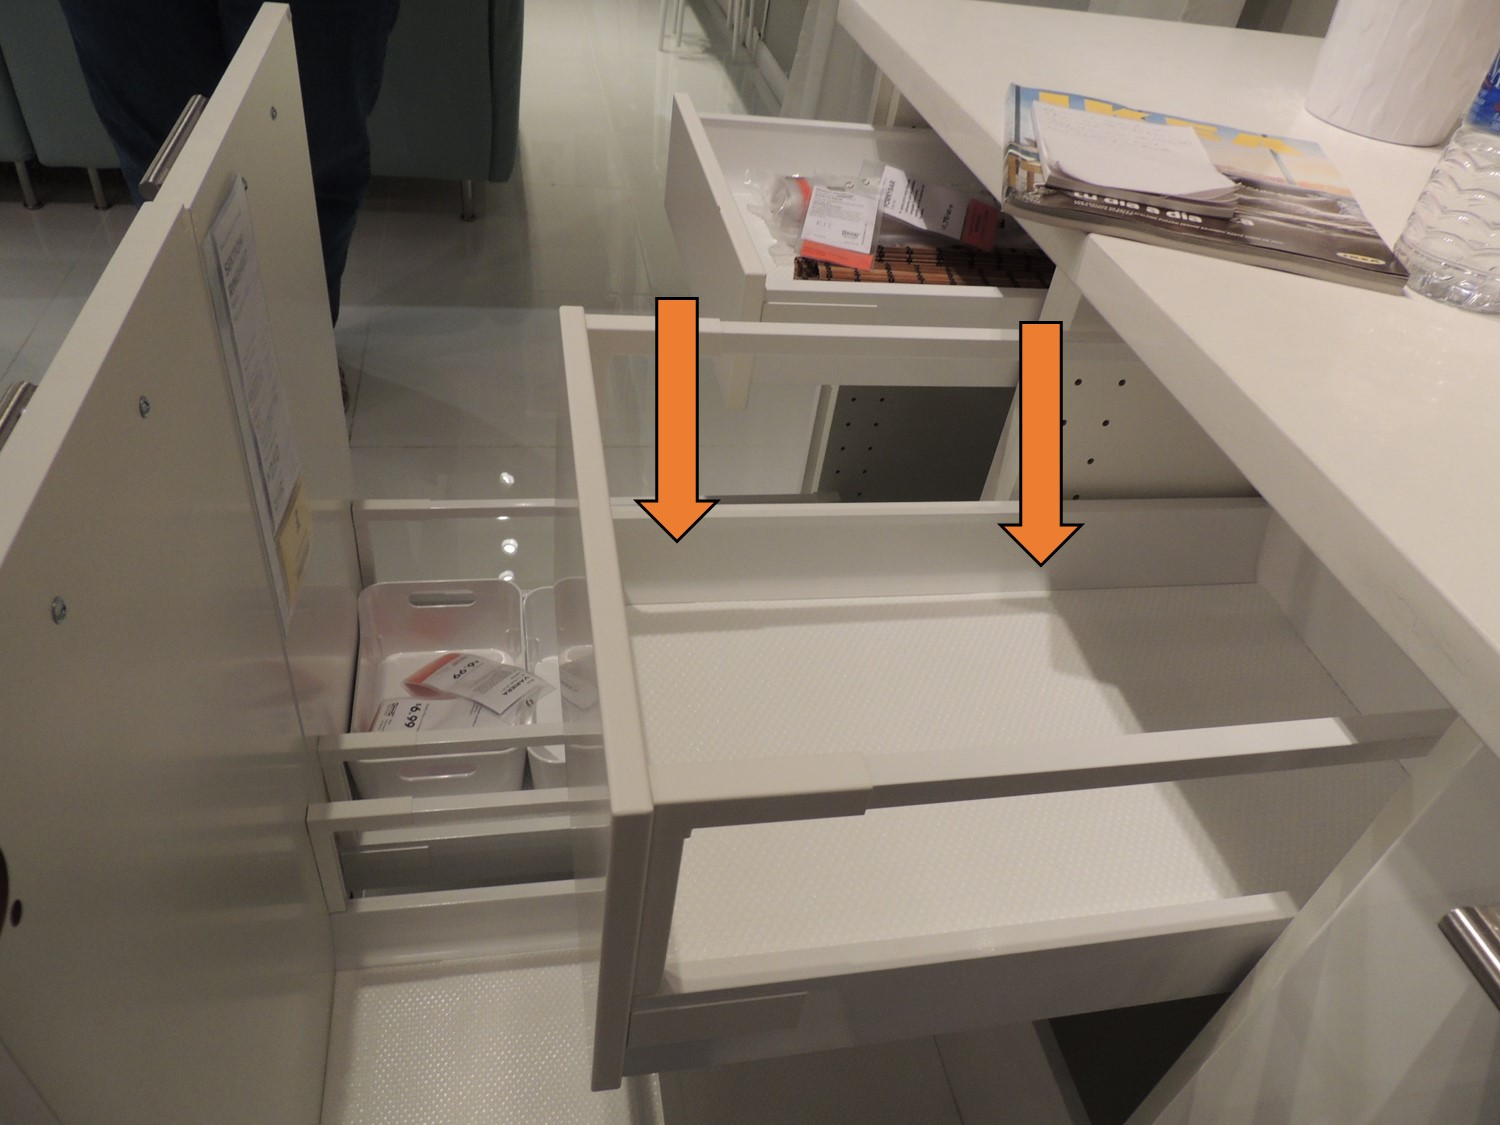 The Difference Between IKEAs Two Different Kitchen Drawer